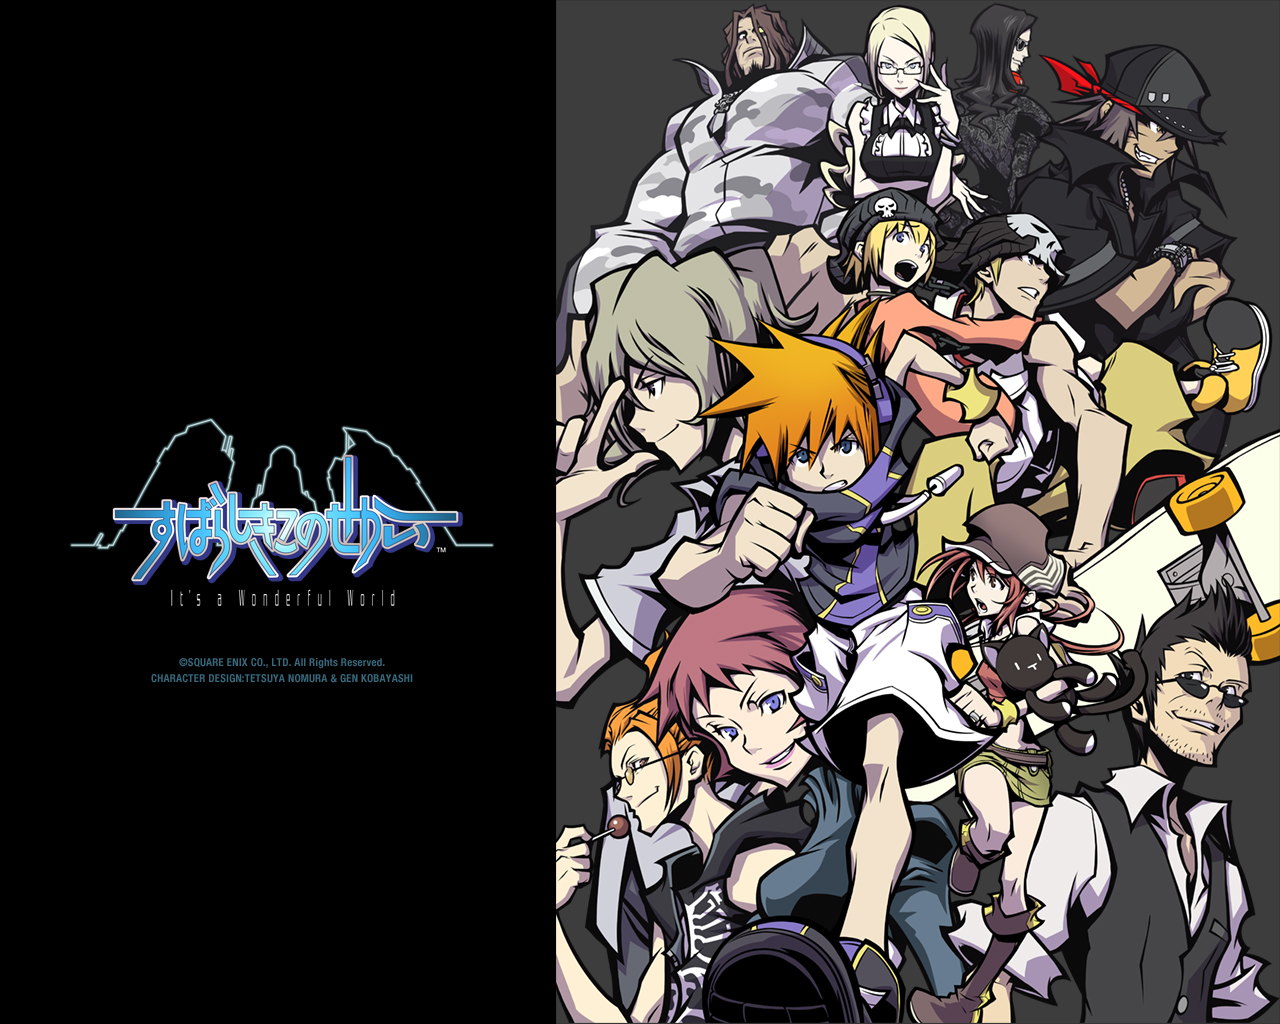 The World Ends With You Twewy Images The World Ends With You Hd